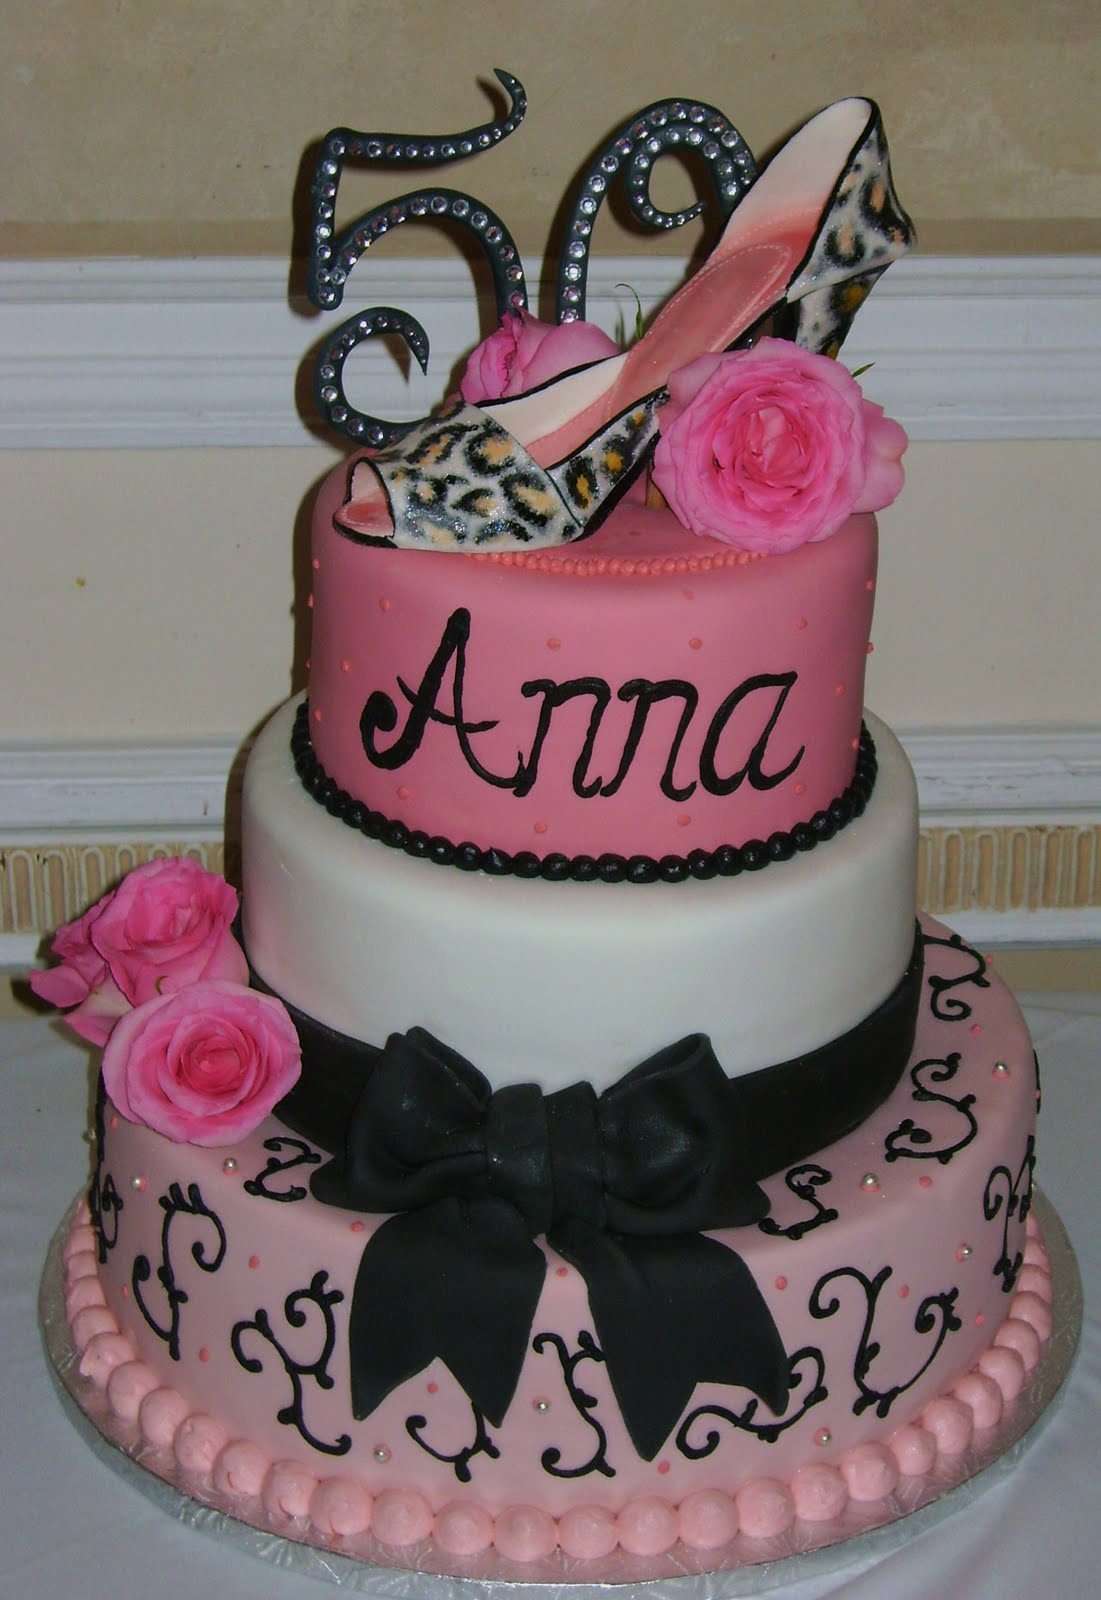 Birthday Cake For Women 50th Birthday Cakes For Women Wedding Academy Creative Elegant